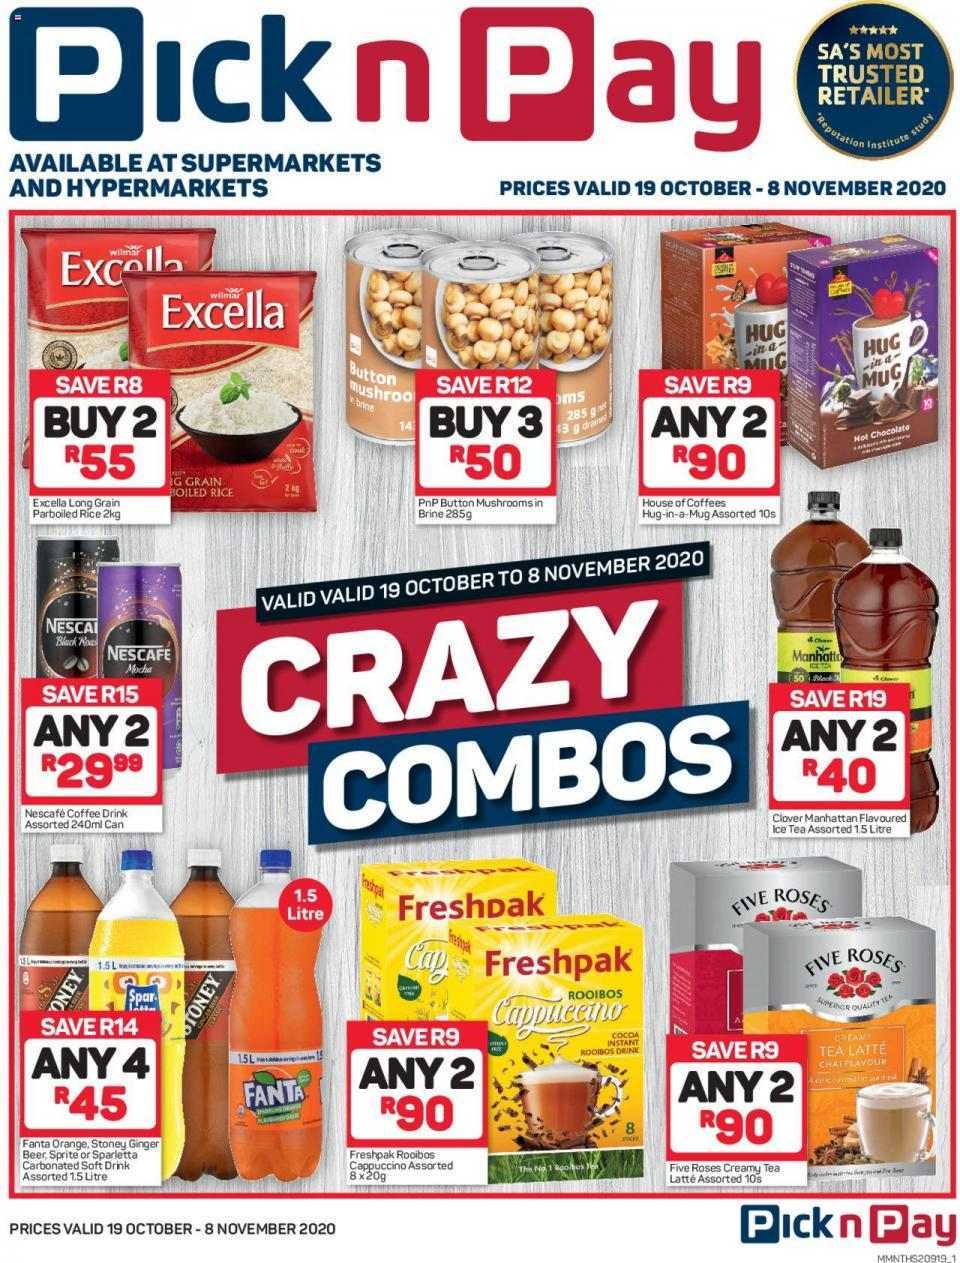 pick n pay specials crazy combos 19 october 2020